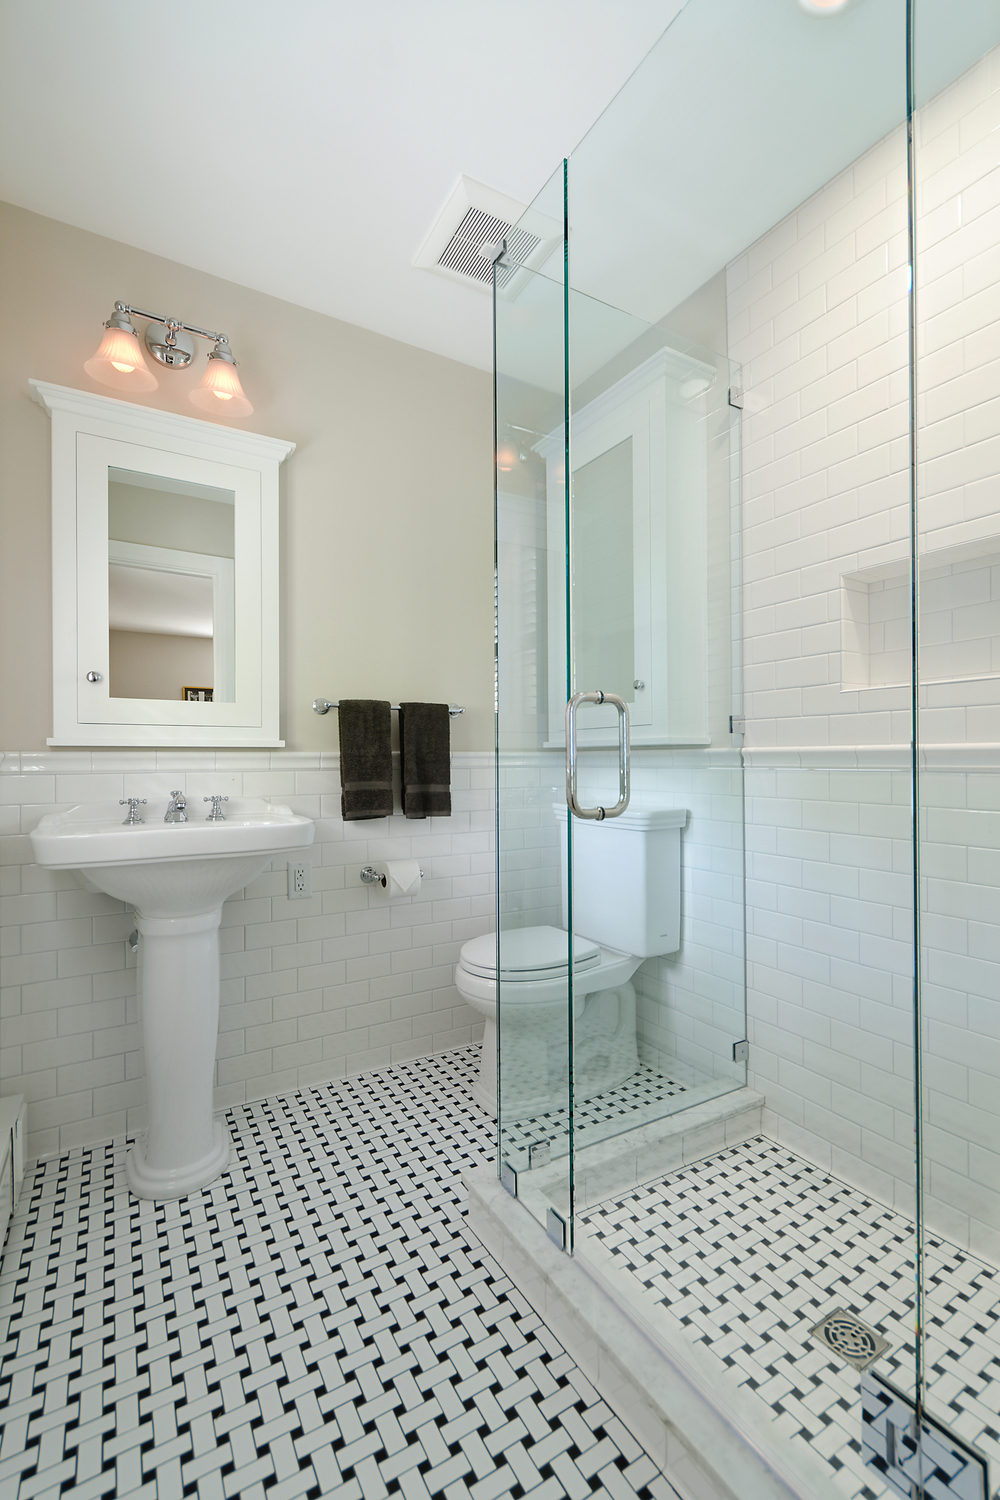 Great pictures and ideas basketweave bathroom floor tile haines bath remodel dailygadgetfo Choice Image